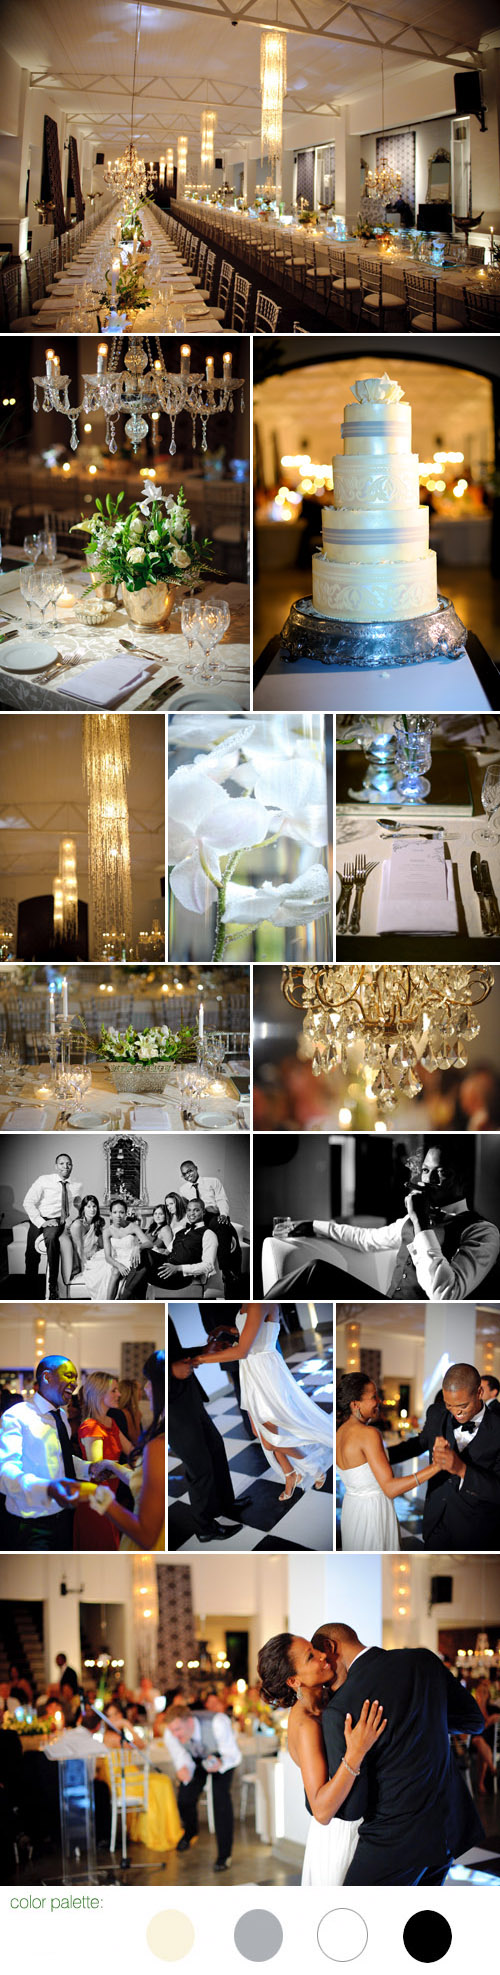 wedding reception in south africa, cream, grey-silver, off-white and black wedding color palette, images by jean pierre uys photography